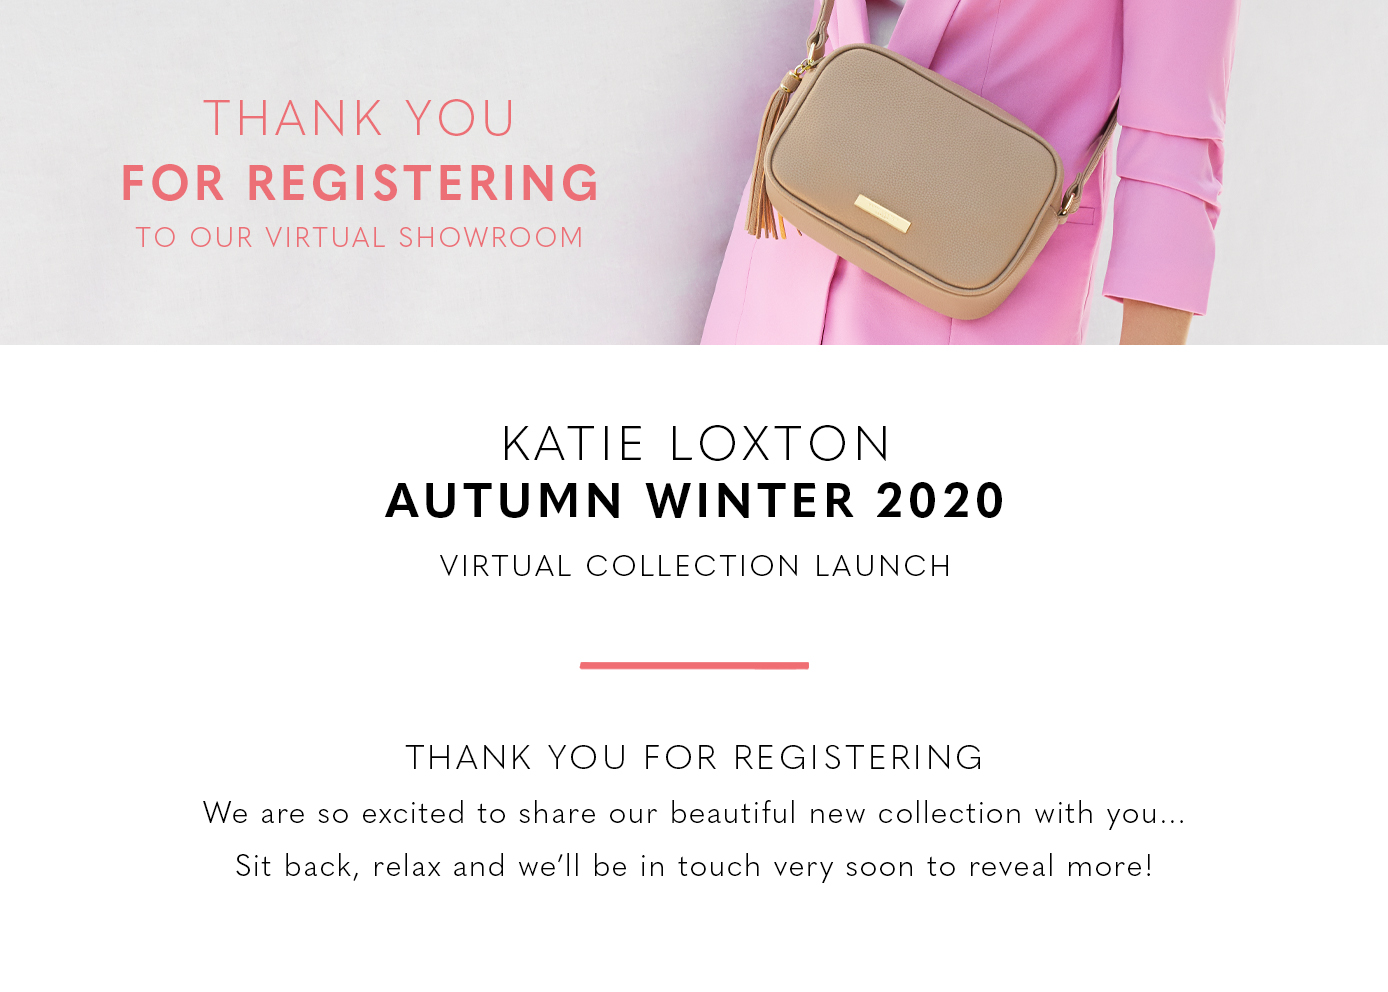 Katie Loxton Thank You For Registering